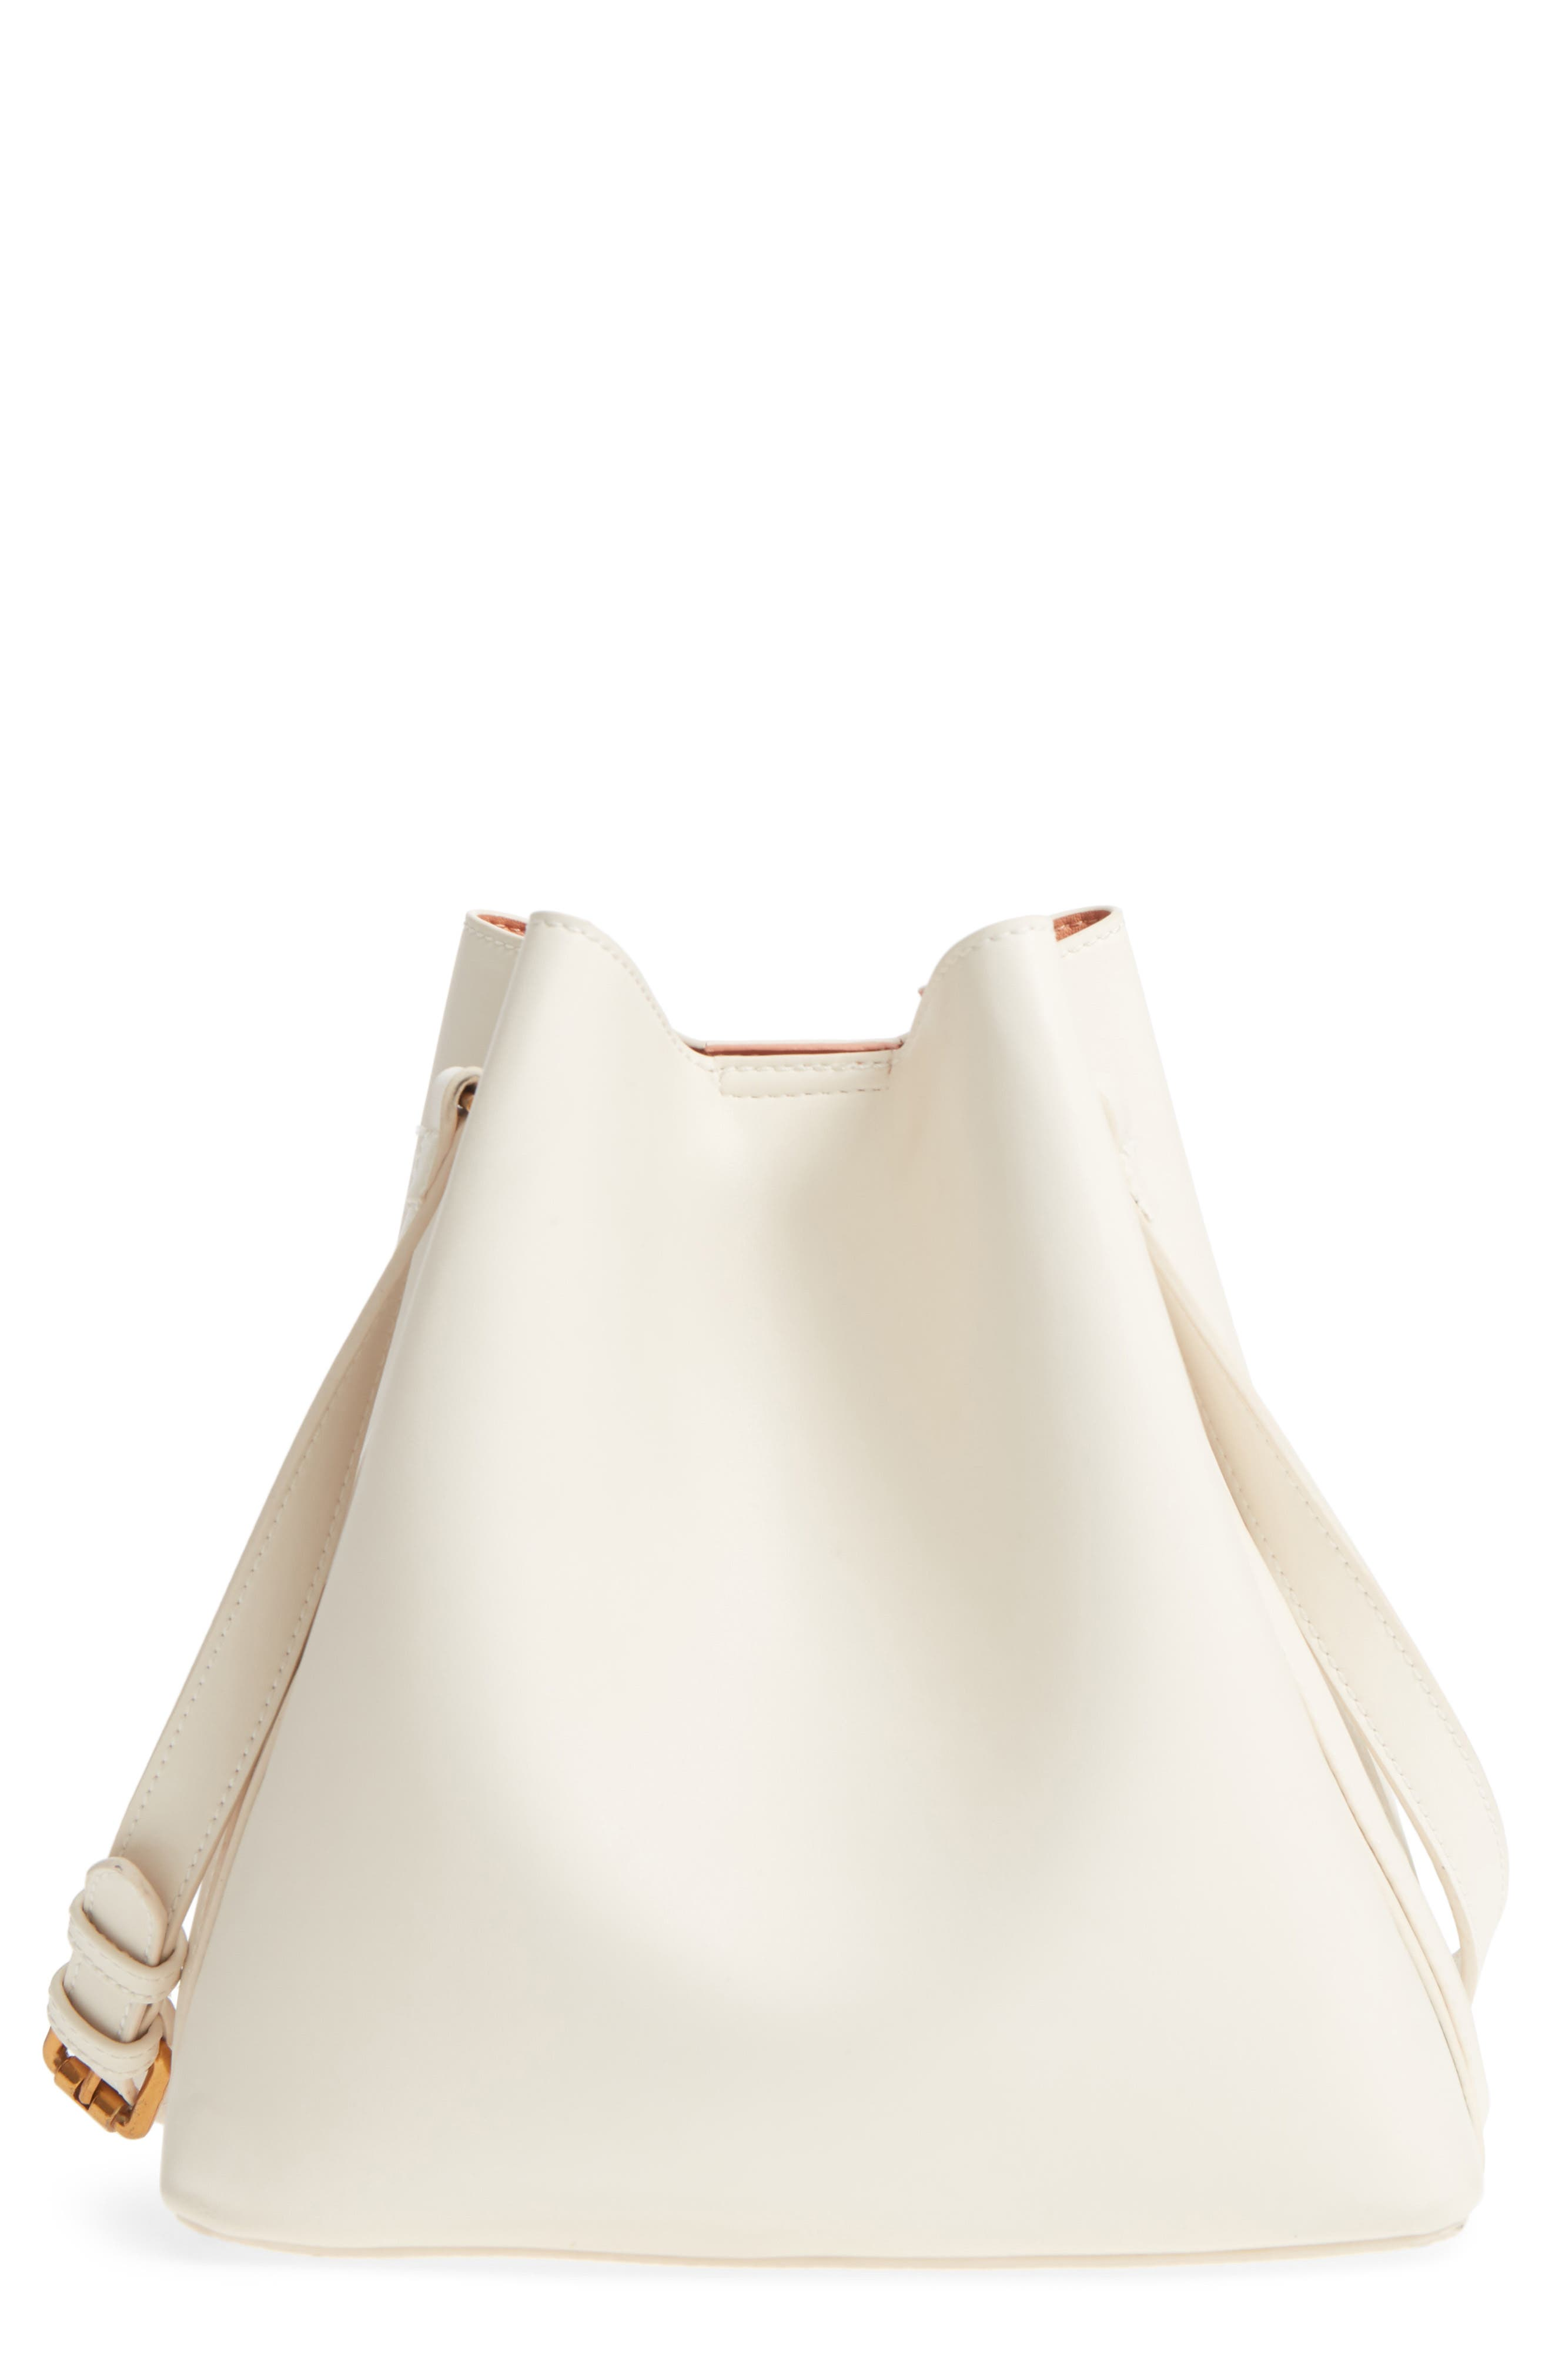 STREET LEVEL,                             Faux Leather Bucket Tote,                             Main thumbnail 1, color,                             100